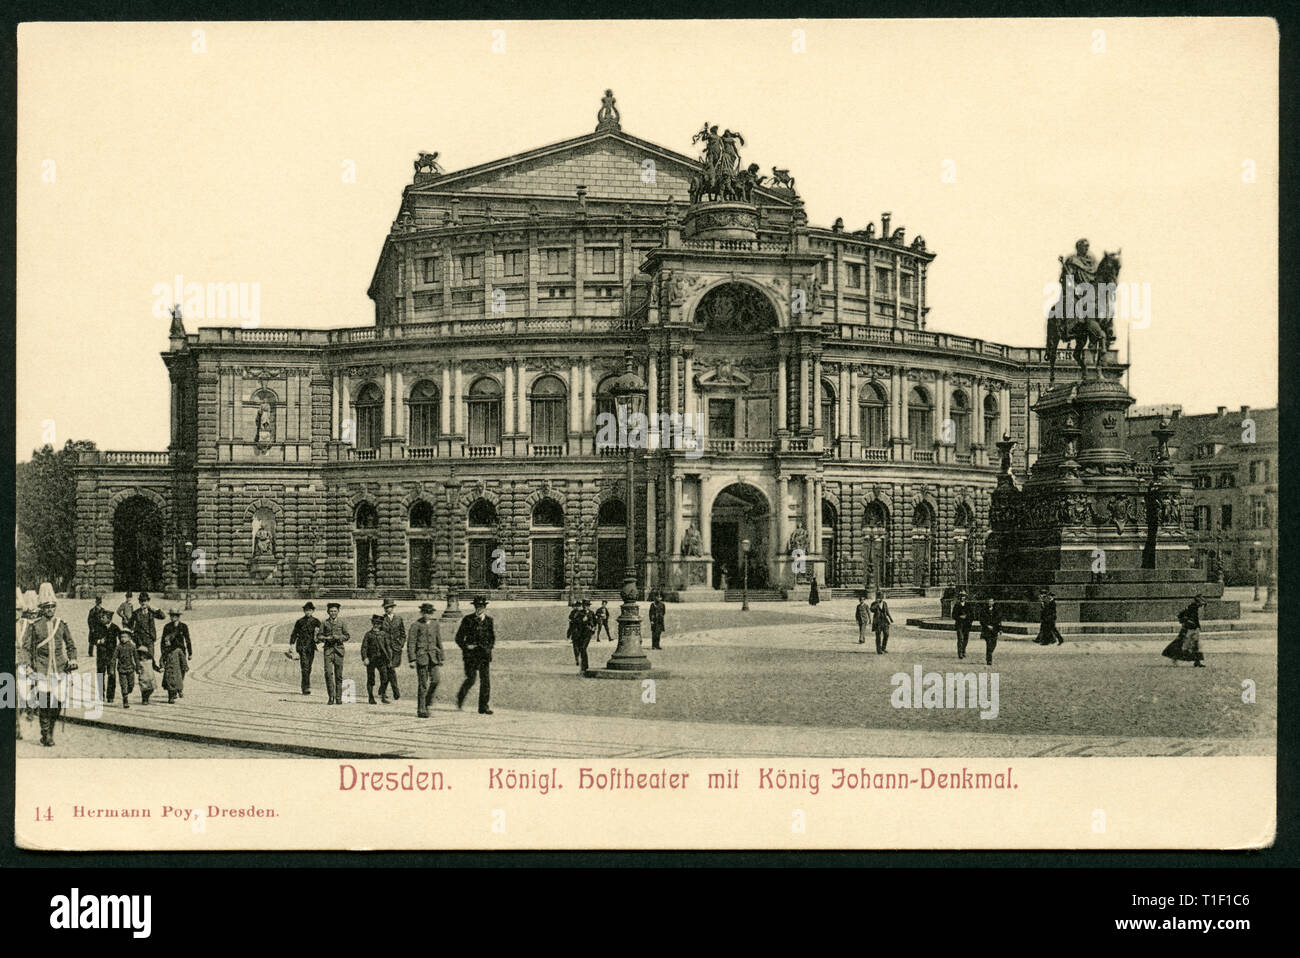 Germany, Saxony, Dresden, Royal Theatre and the monument of King Johann, postcard, probably between 1900-1914., Additional-Rights-Clearance-Info-Not-Available - Stock Image